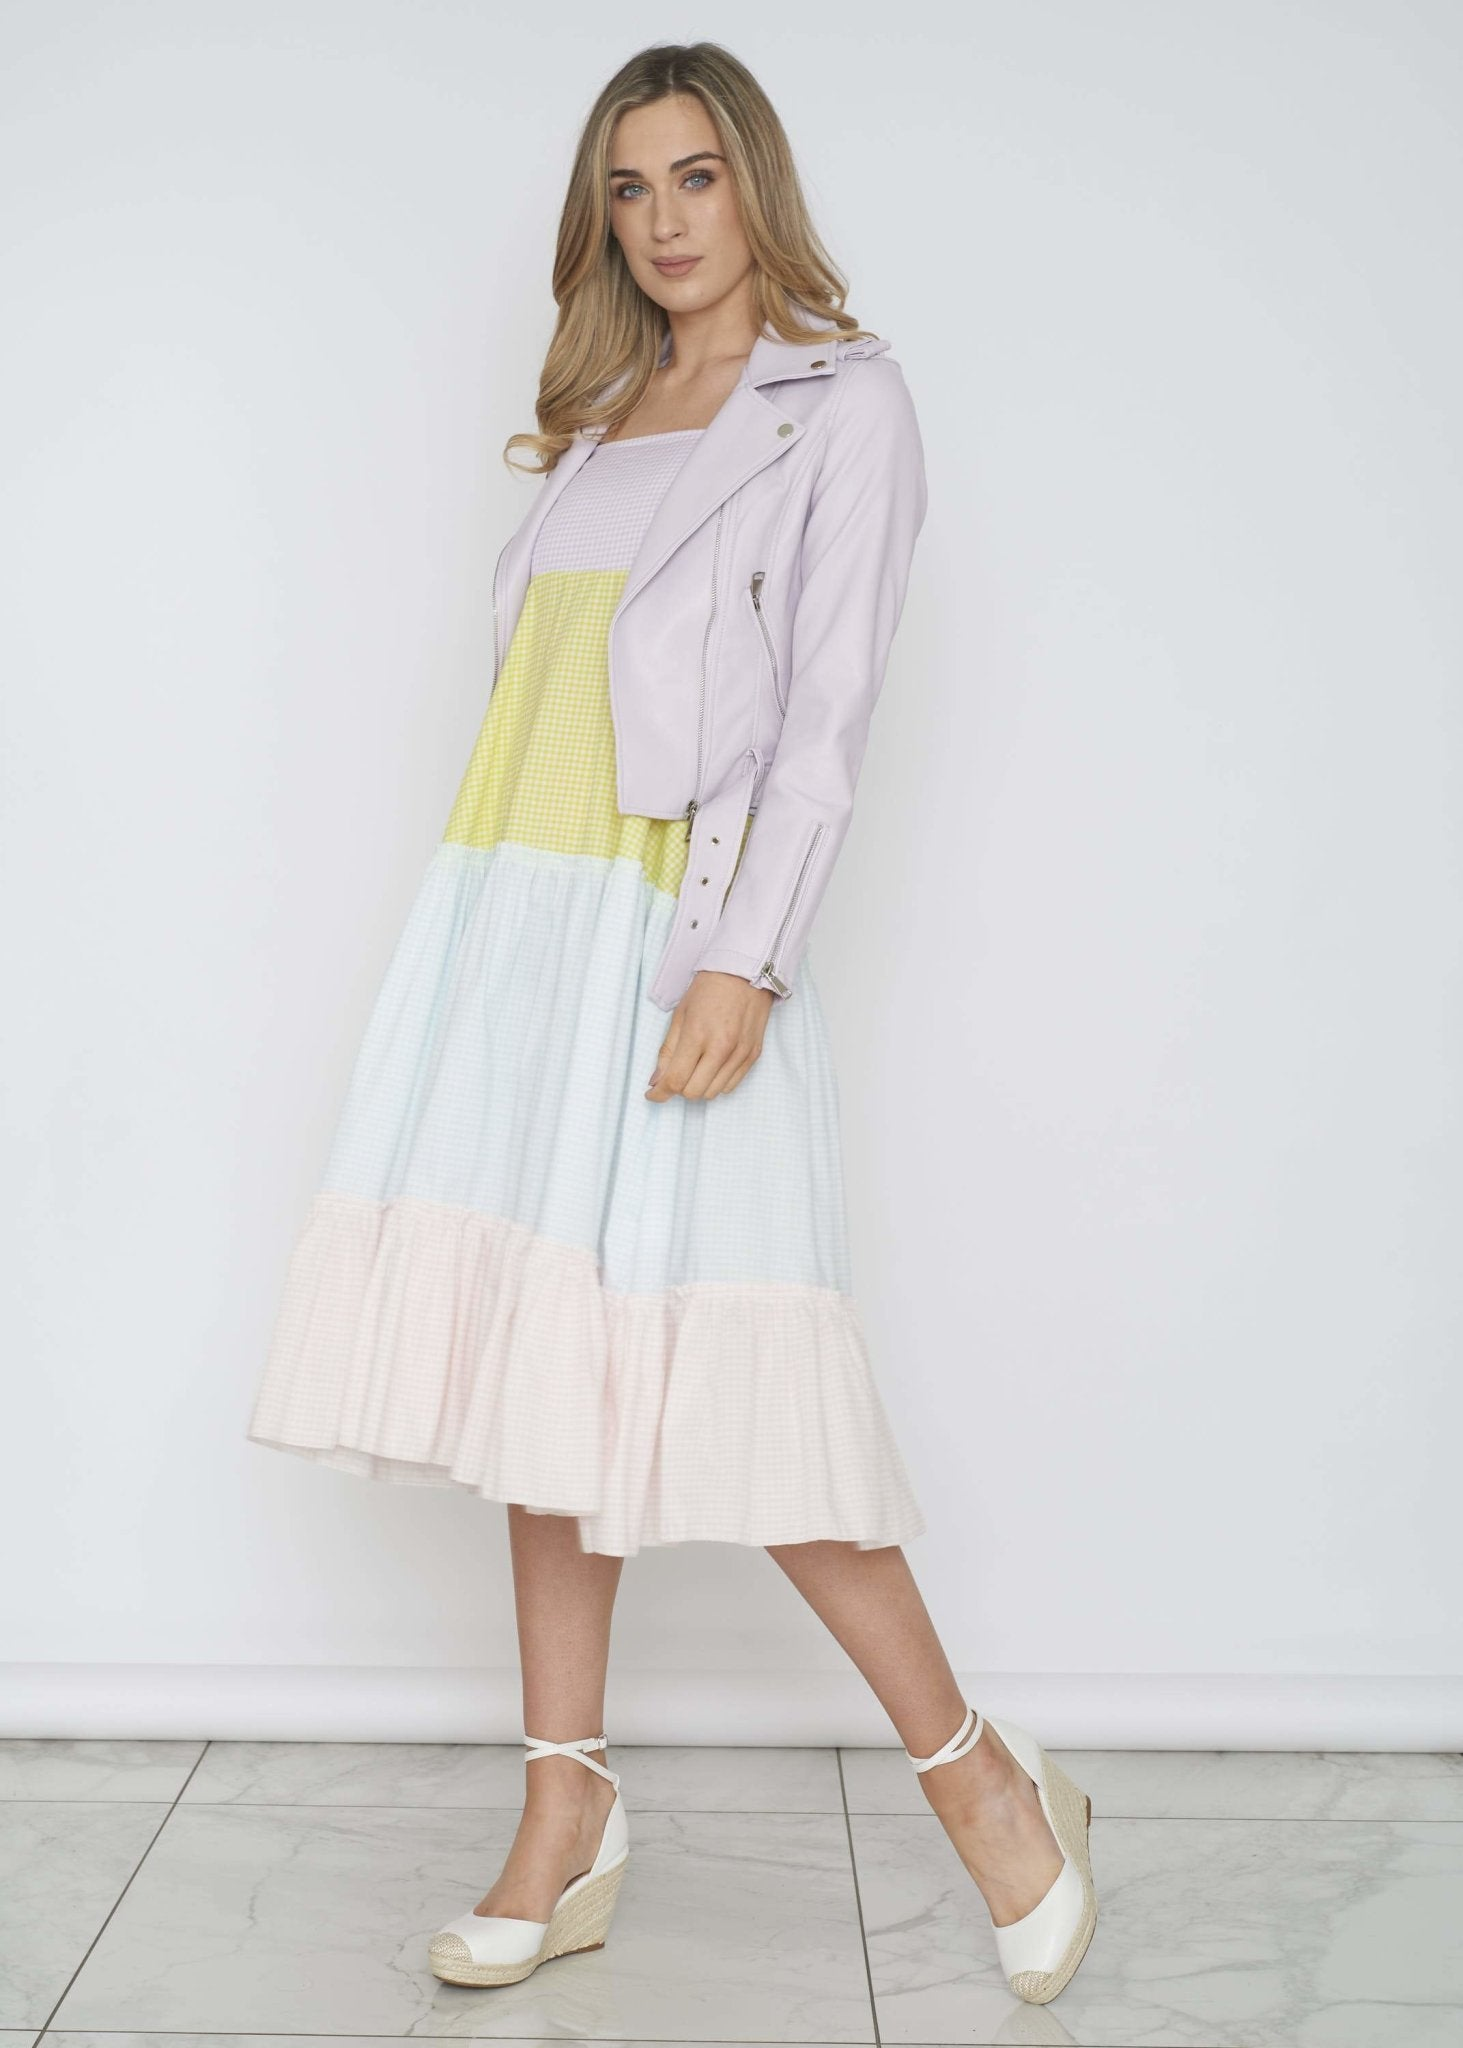 Marley Tiered Gingham Dress In Multi - The Walk in Wardrobe